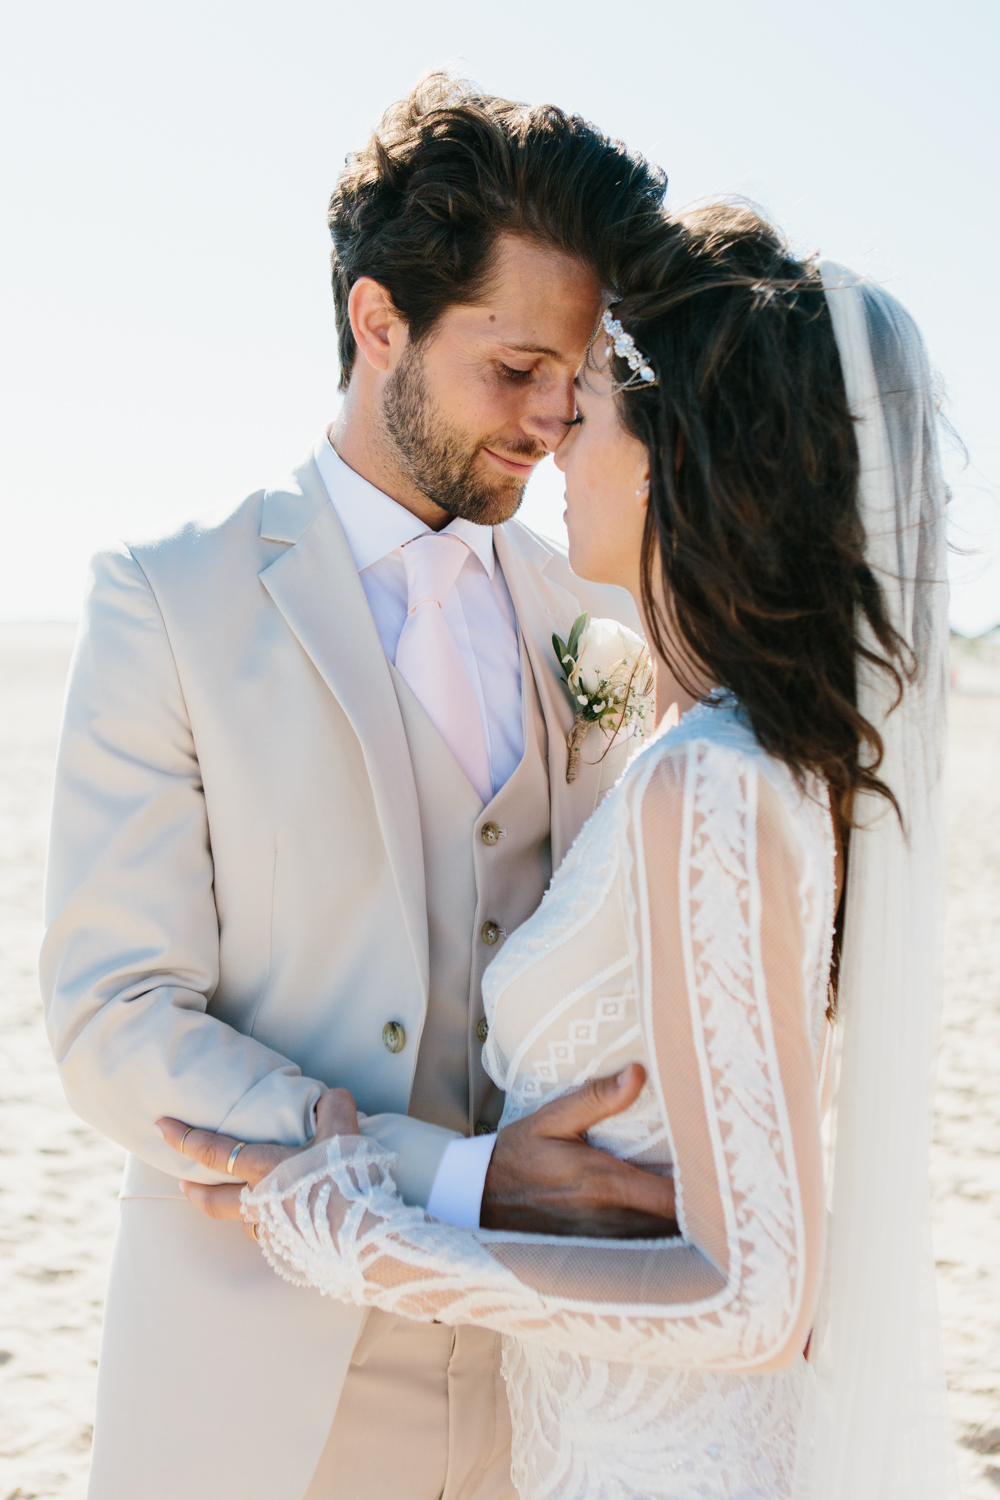 Portugal Beach Wedding at Ilha Deserta, Planned by Susana at ...